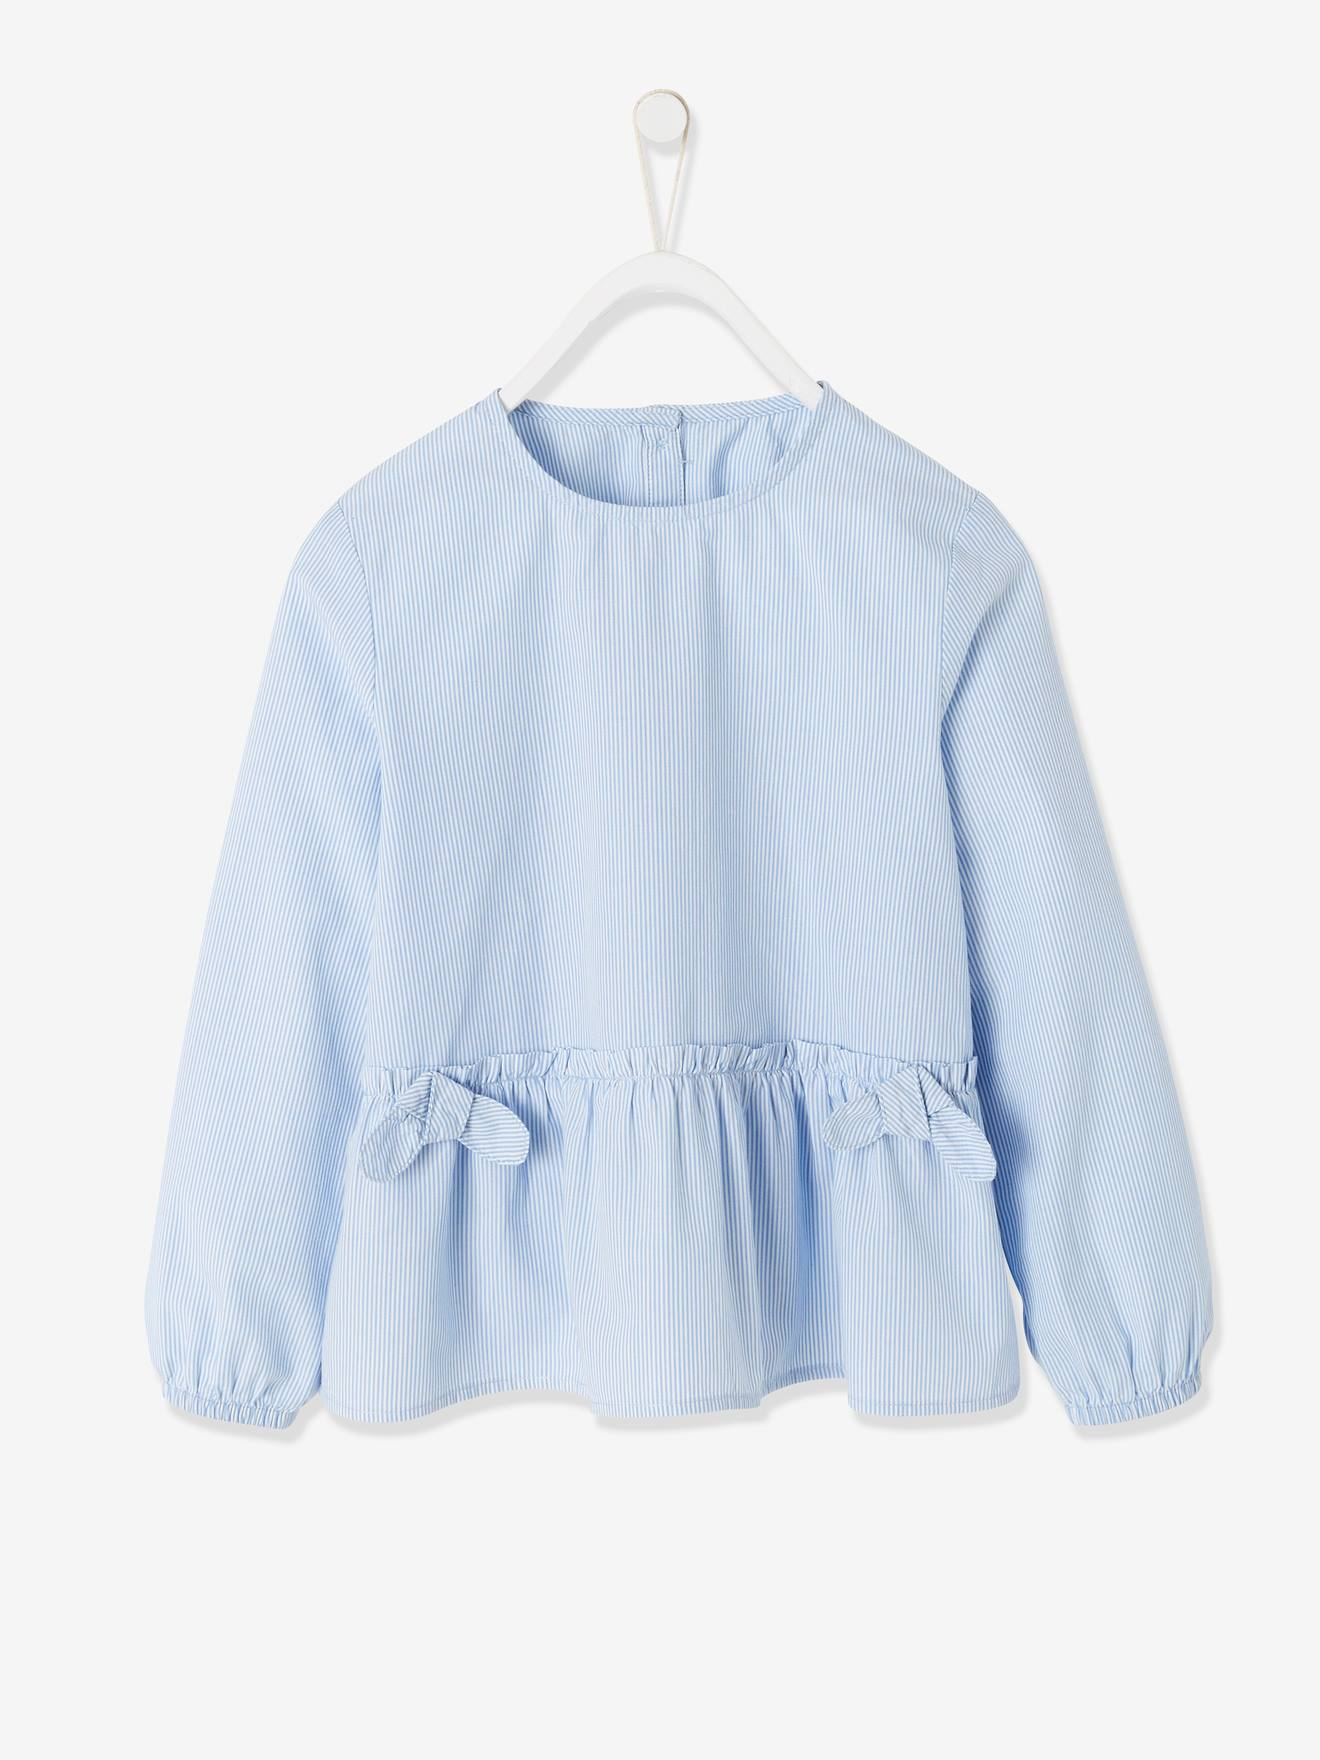 Striped Blouse with Ruffle & Decorative Bow for Girls - blue light striped,  Girls | Vertbaudet